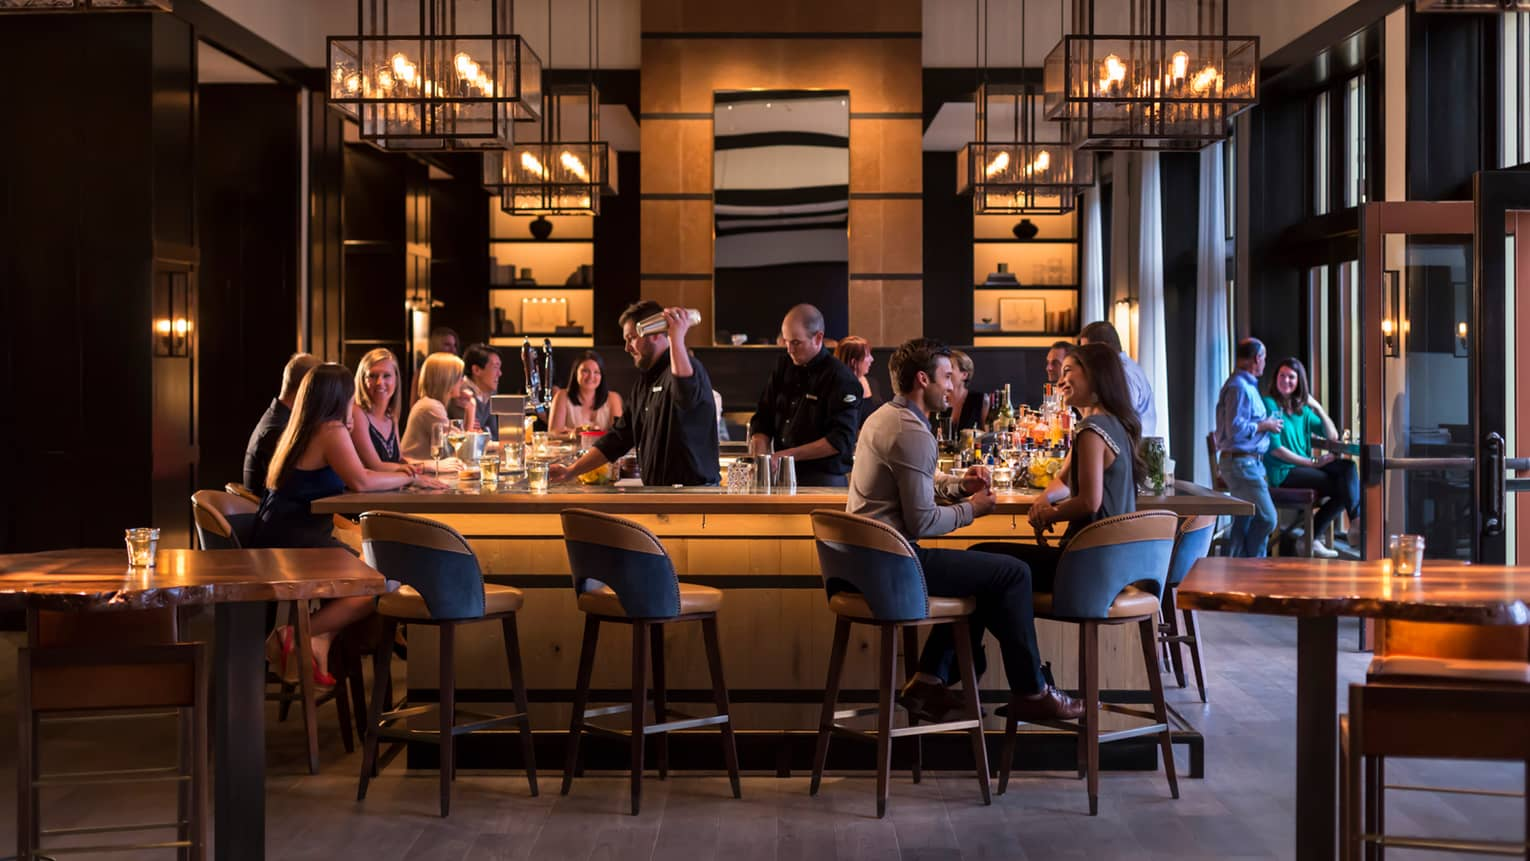 Guests socialize around wood bar with mid-century style stools and chandeliers as bartender makes martini